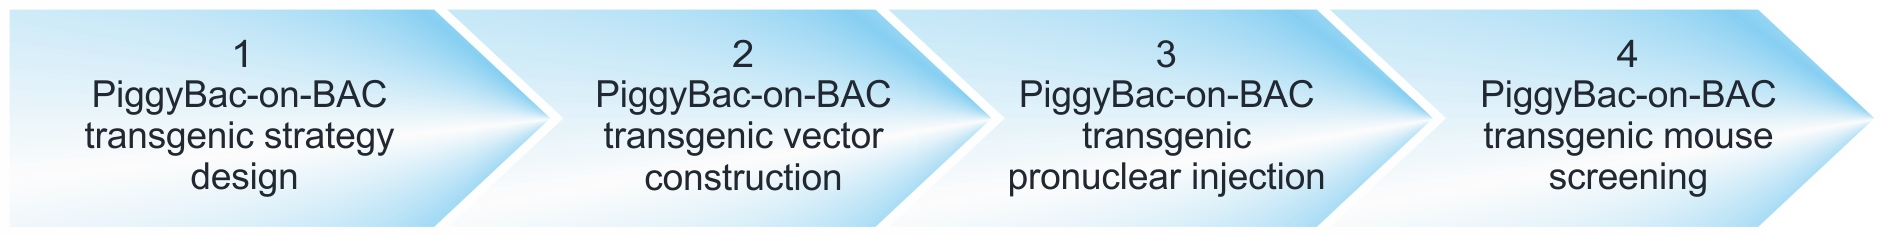 workflow of PiggyBac-on-BAC transgenic mouse projects